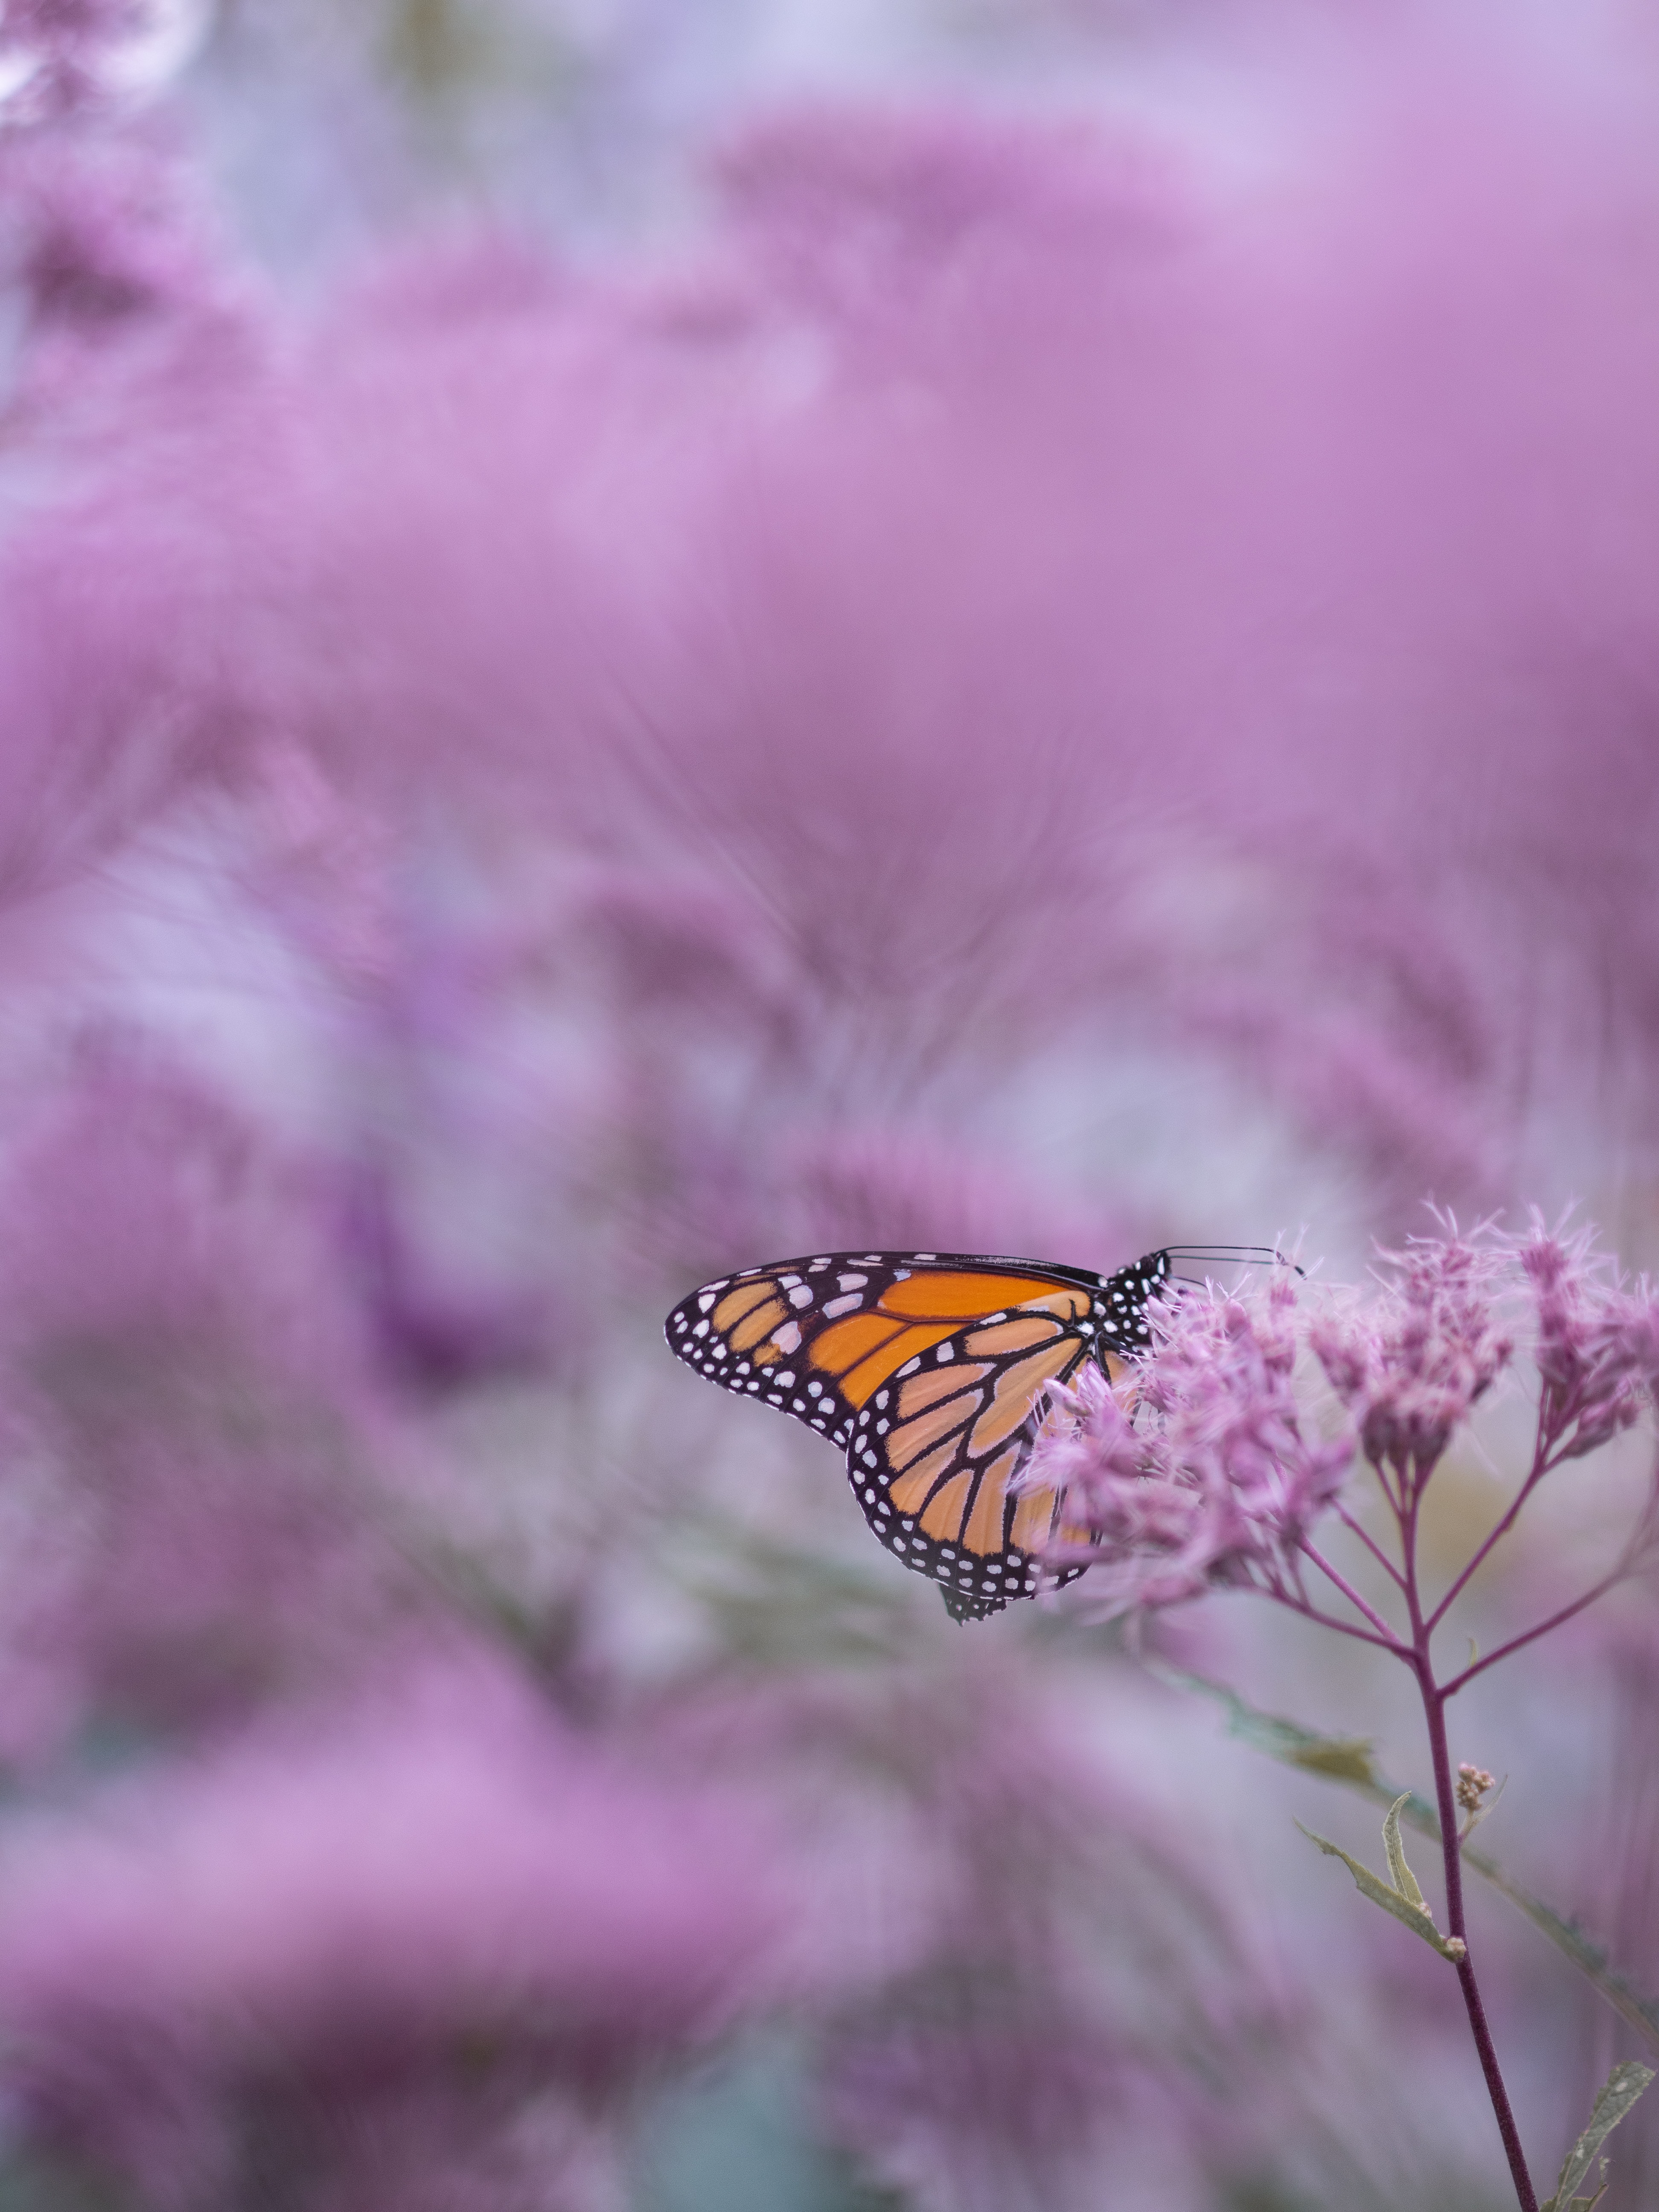 brown and white butterfly on purple petaled flower